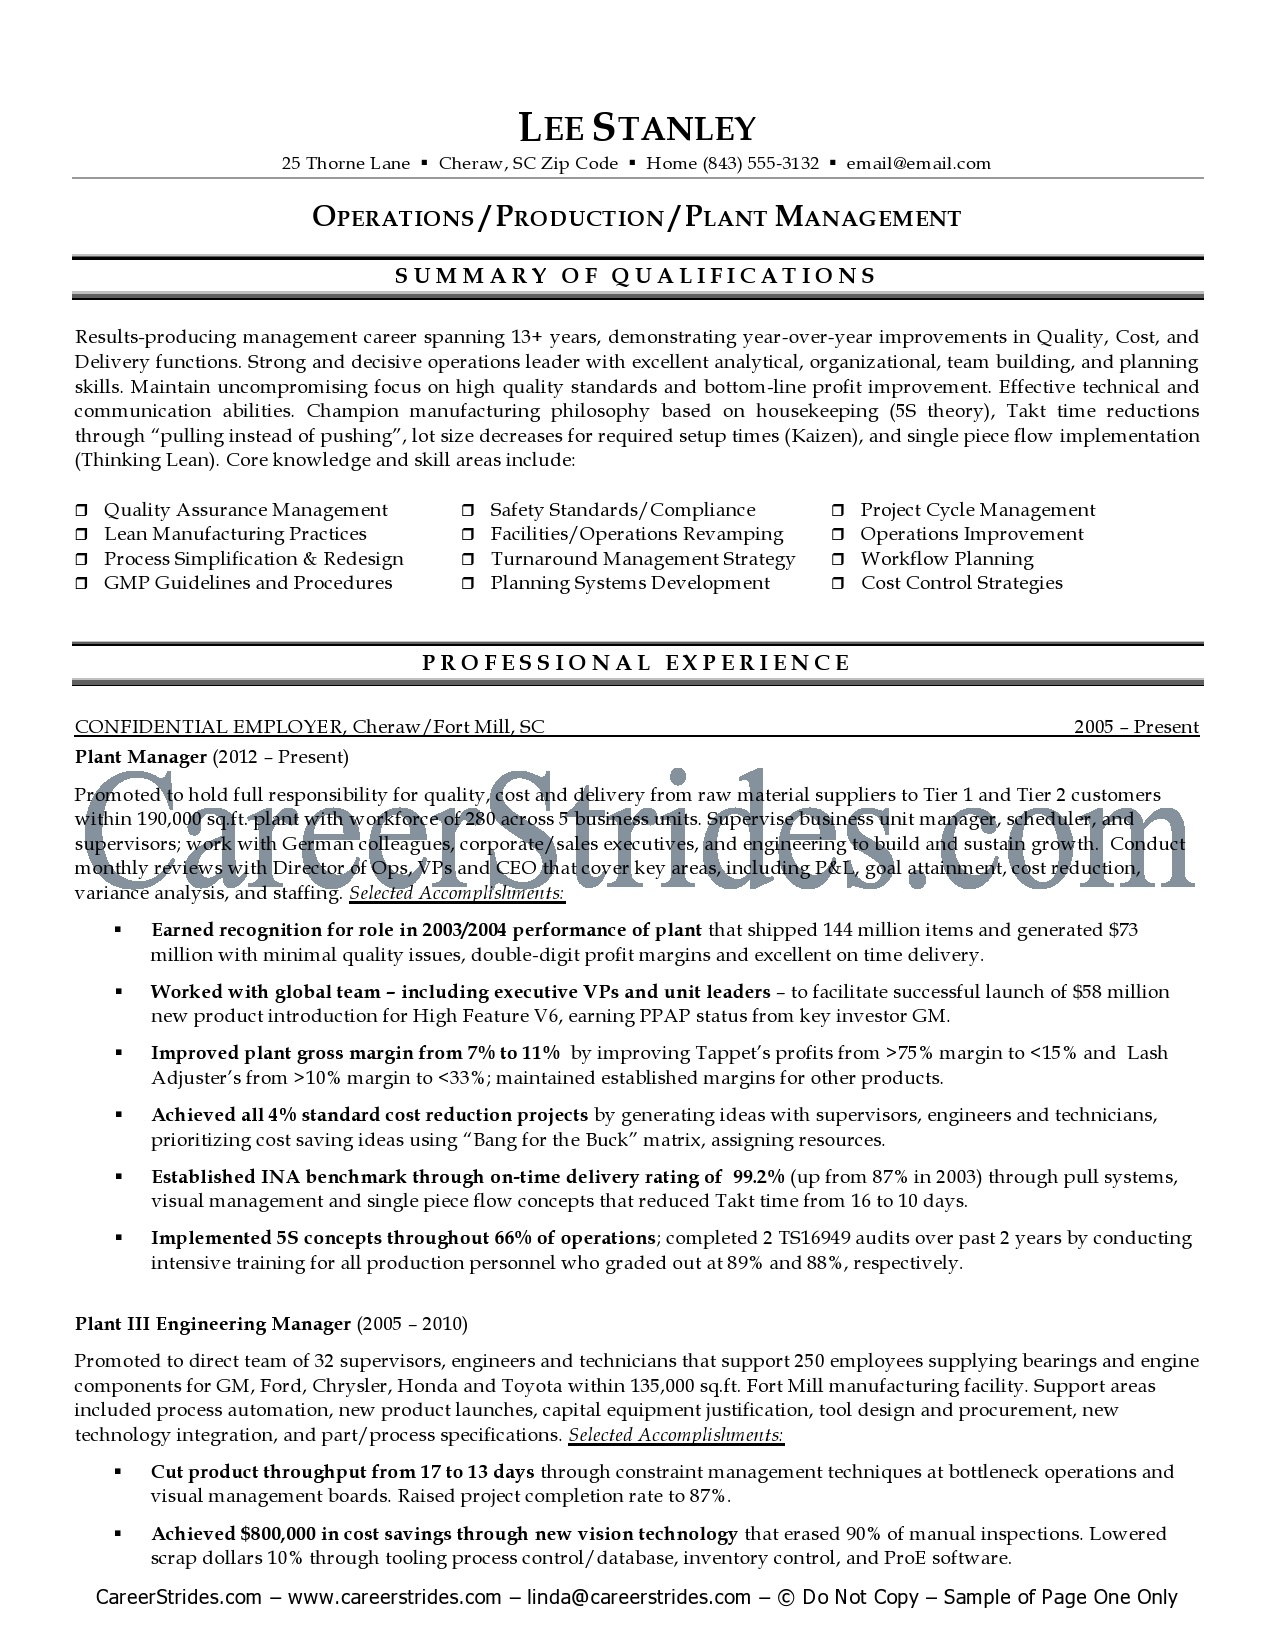 plant manager resumes